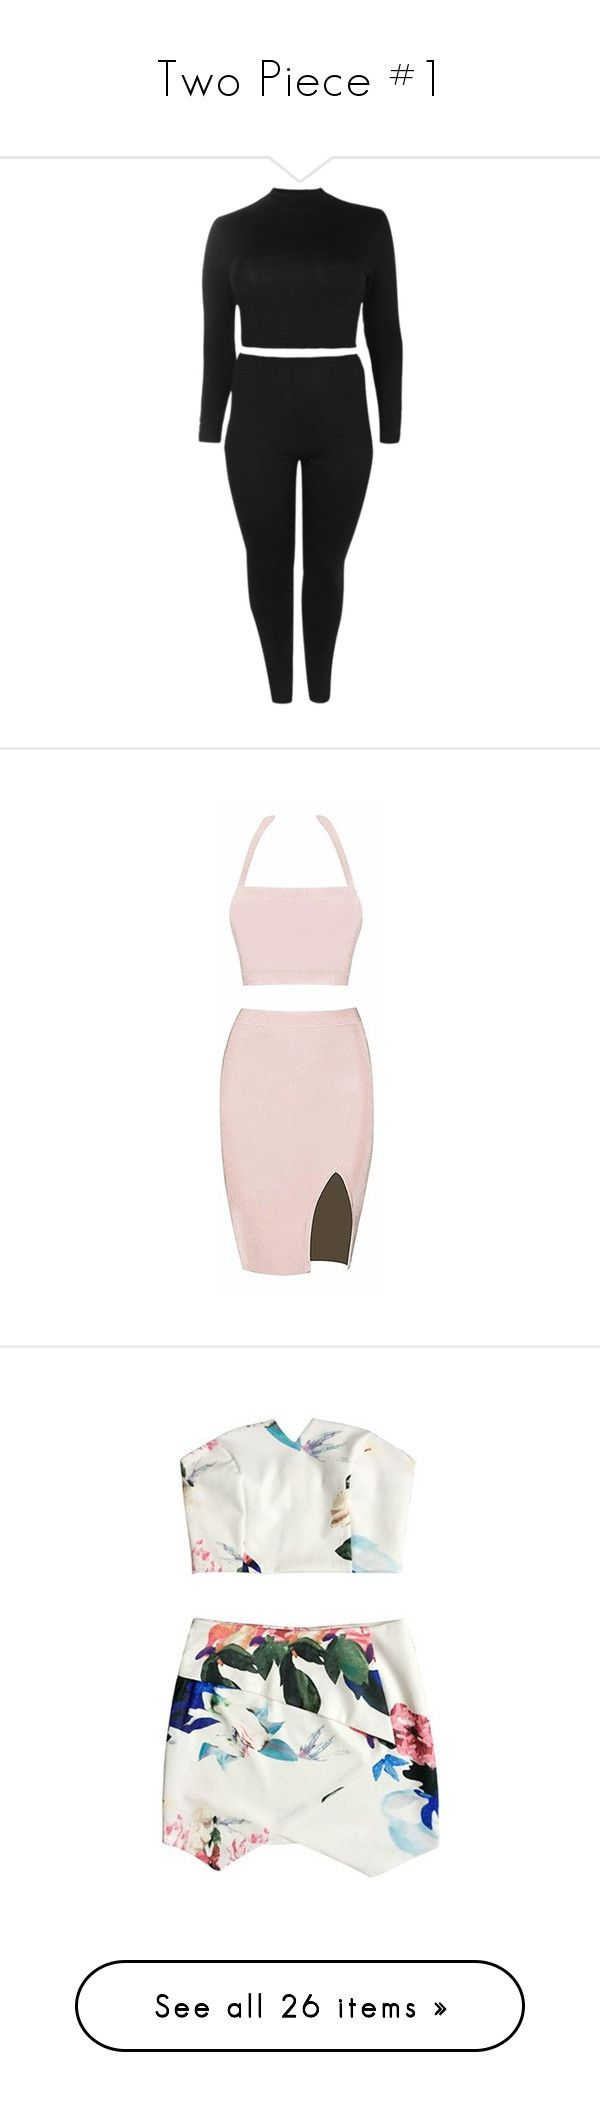 """""""Two Piece #1"""" by andriana-aaa ❤ liked on Polyvore featuring intimates, sleepwear, pajamas, dresses, outfits, vestidos, halter crop top, pink bandage dress, halter dress and two piece bandage dress"""